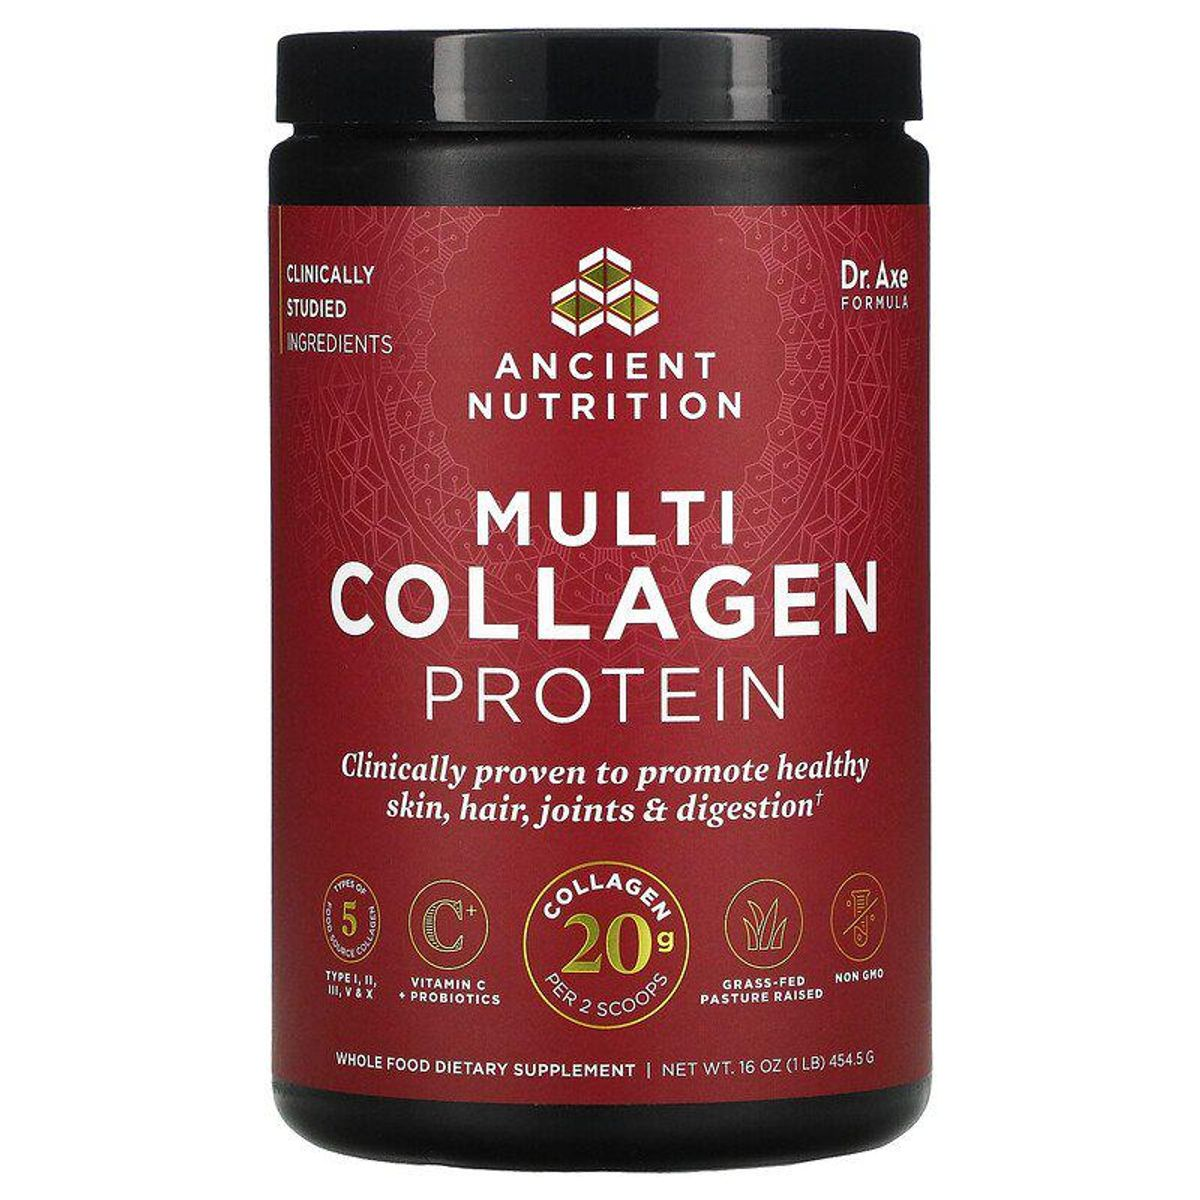 dr axe ancient nutrition multi collagen protein